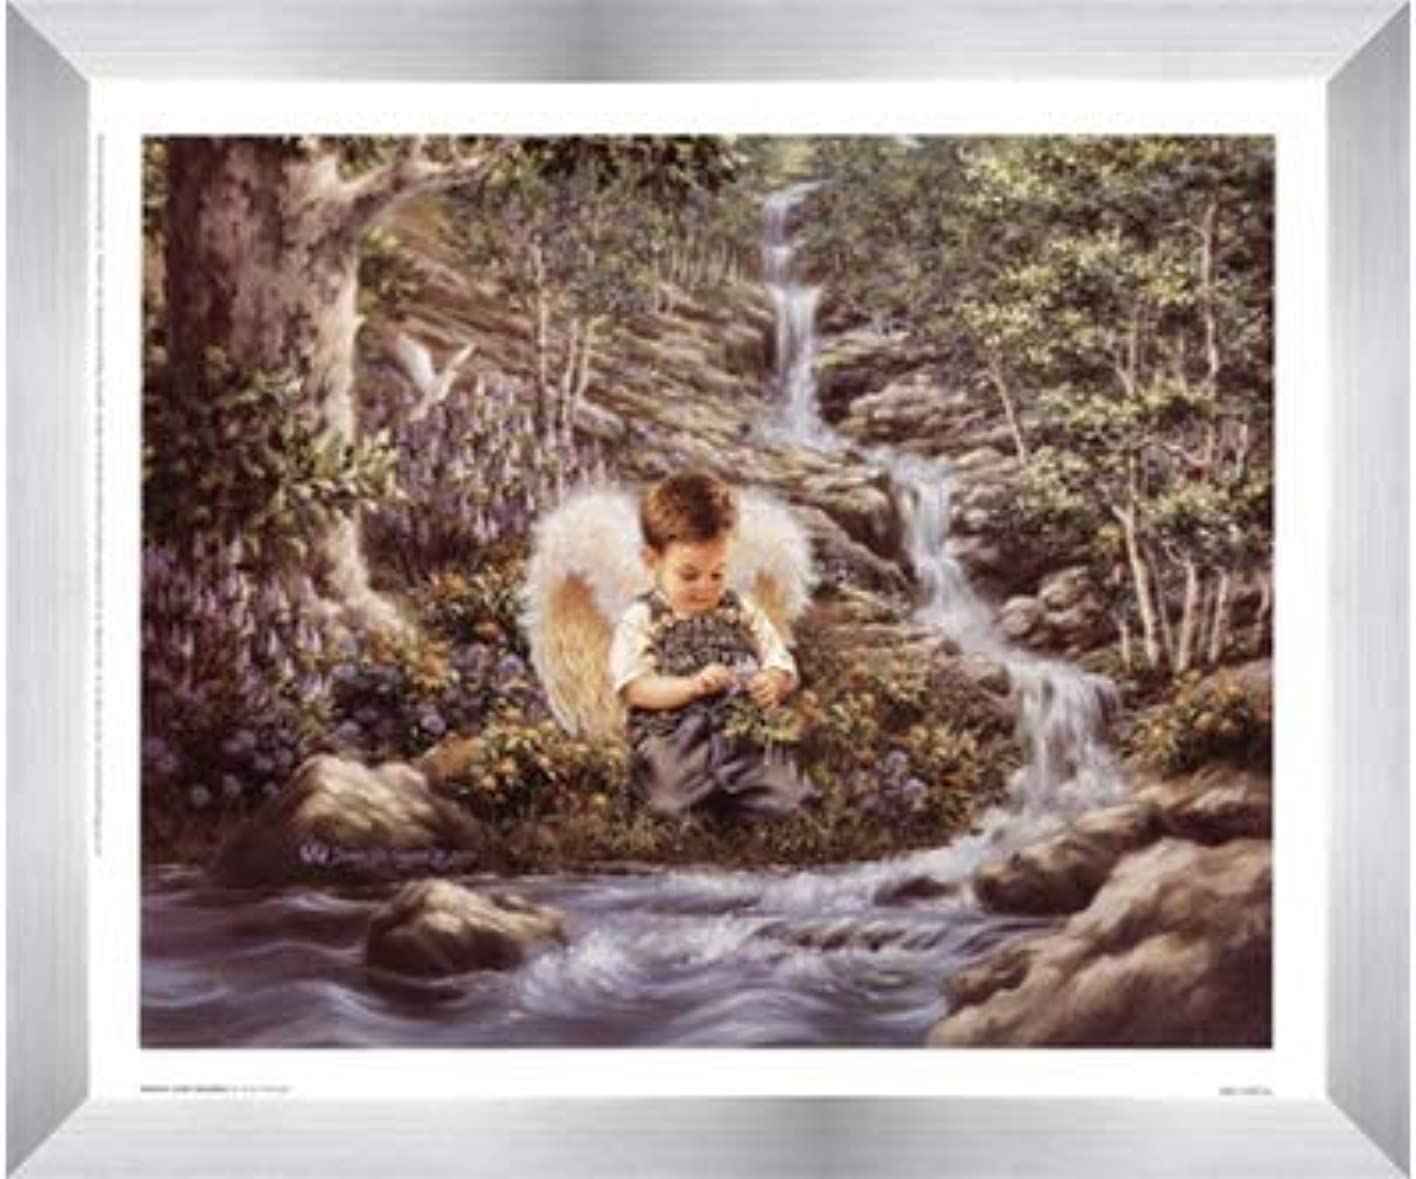 Nature 's Little Guardian By Dona Gelsinger – 12 x 10インチ – アートプリントポスター LE_474489-F9935-12x10